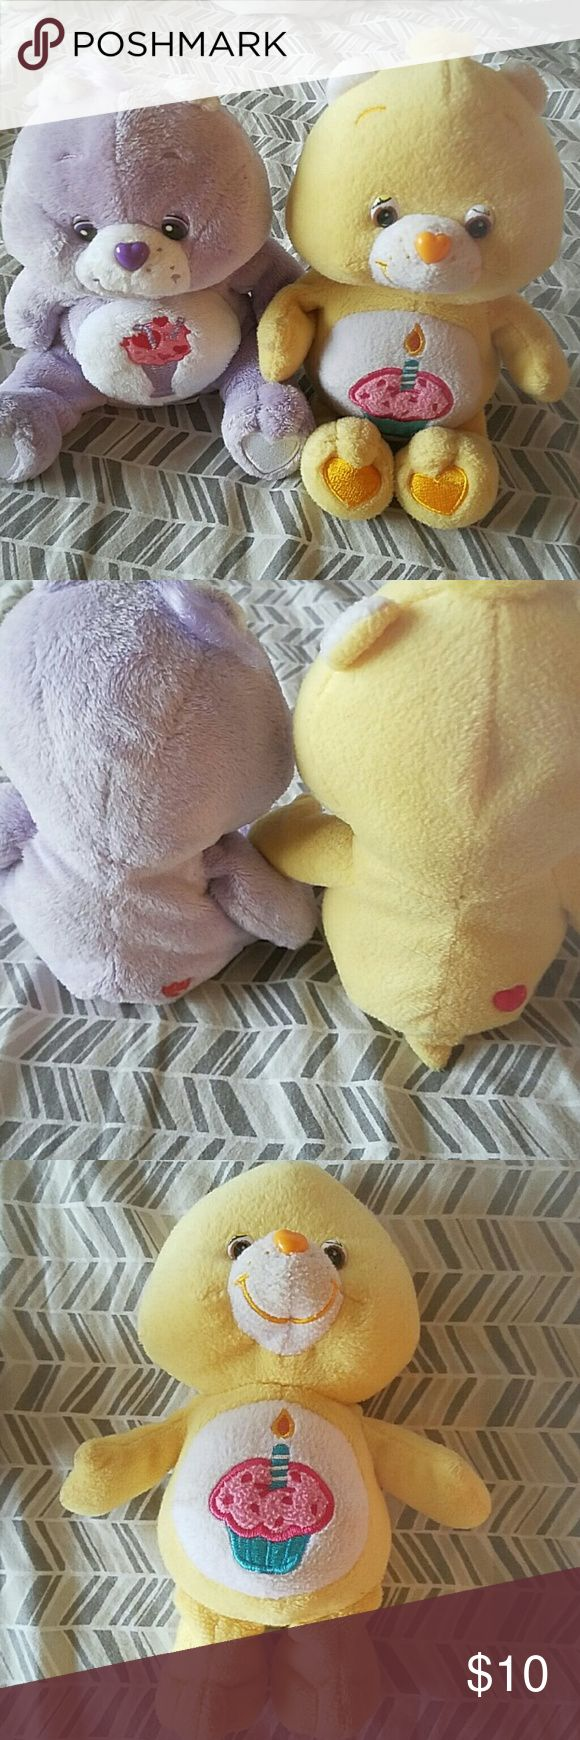 Lot of 2 vintage Care Bears Purple and yellow one!